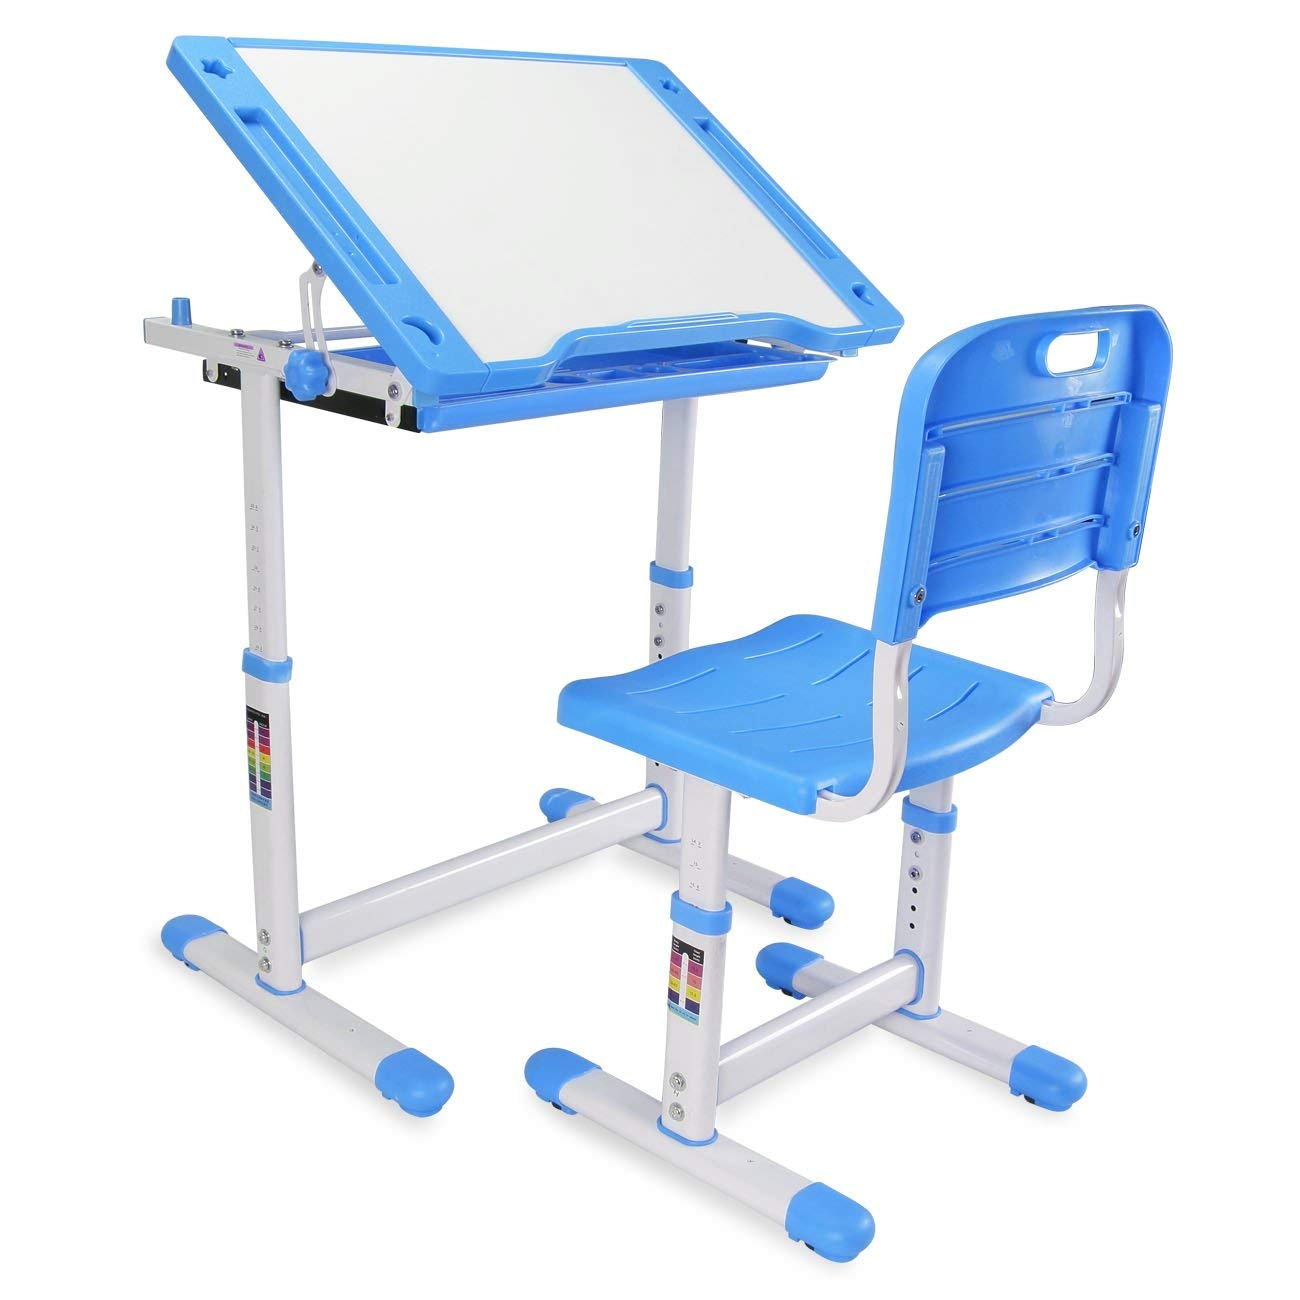 Kidzone Adjustable Children's Desk & Chair Set Kids Study Table Set Desk Height Work Station w/ Pull Out Drawer, Blue